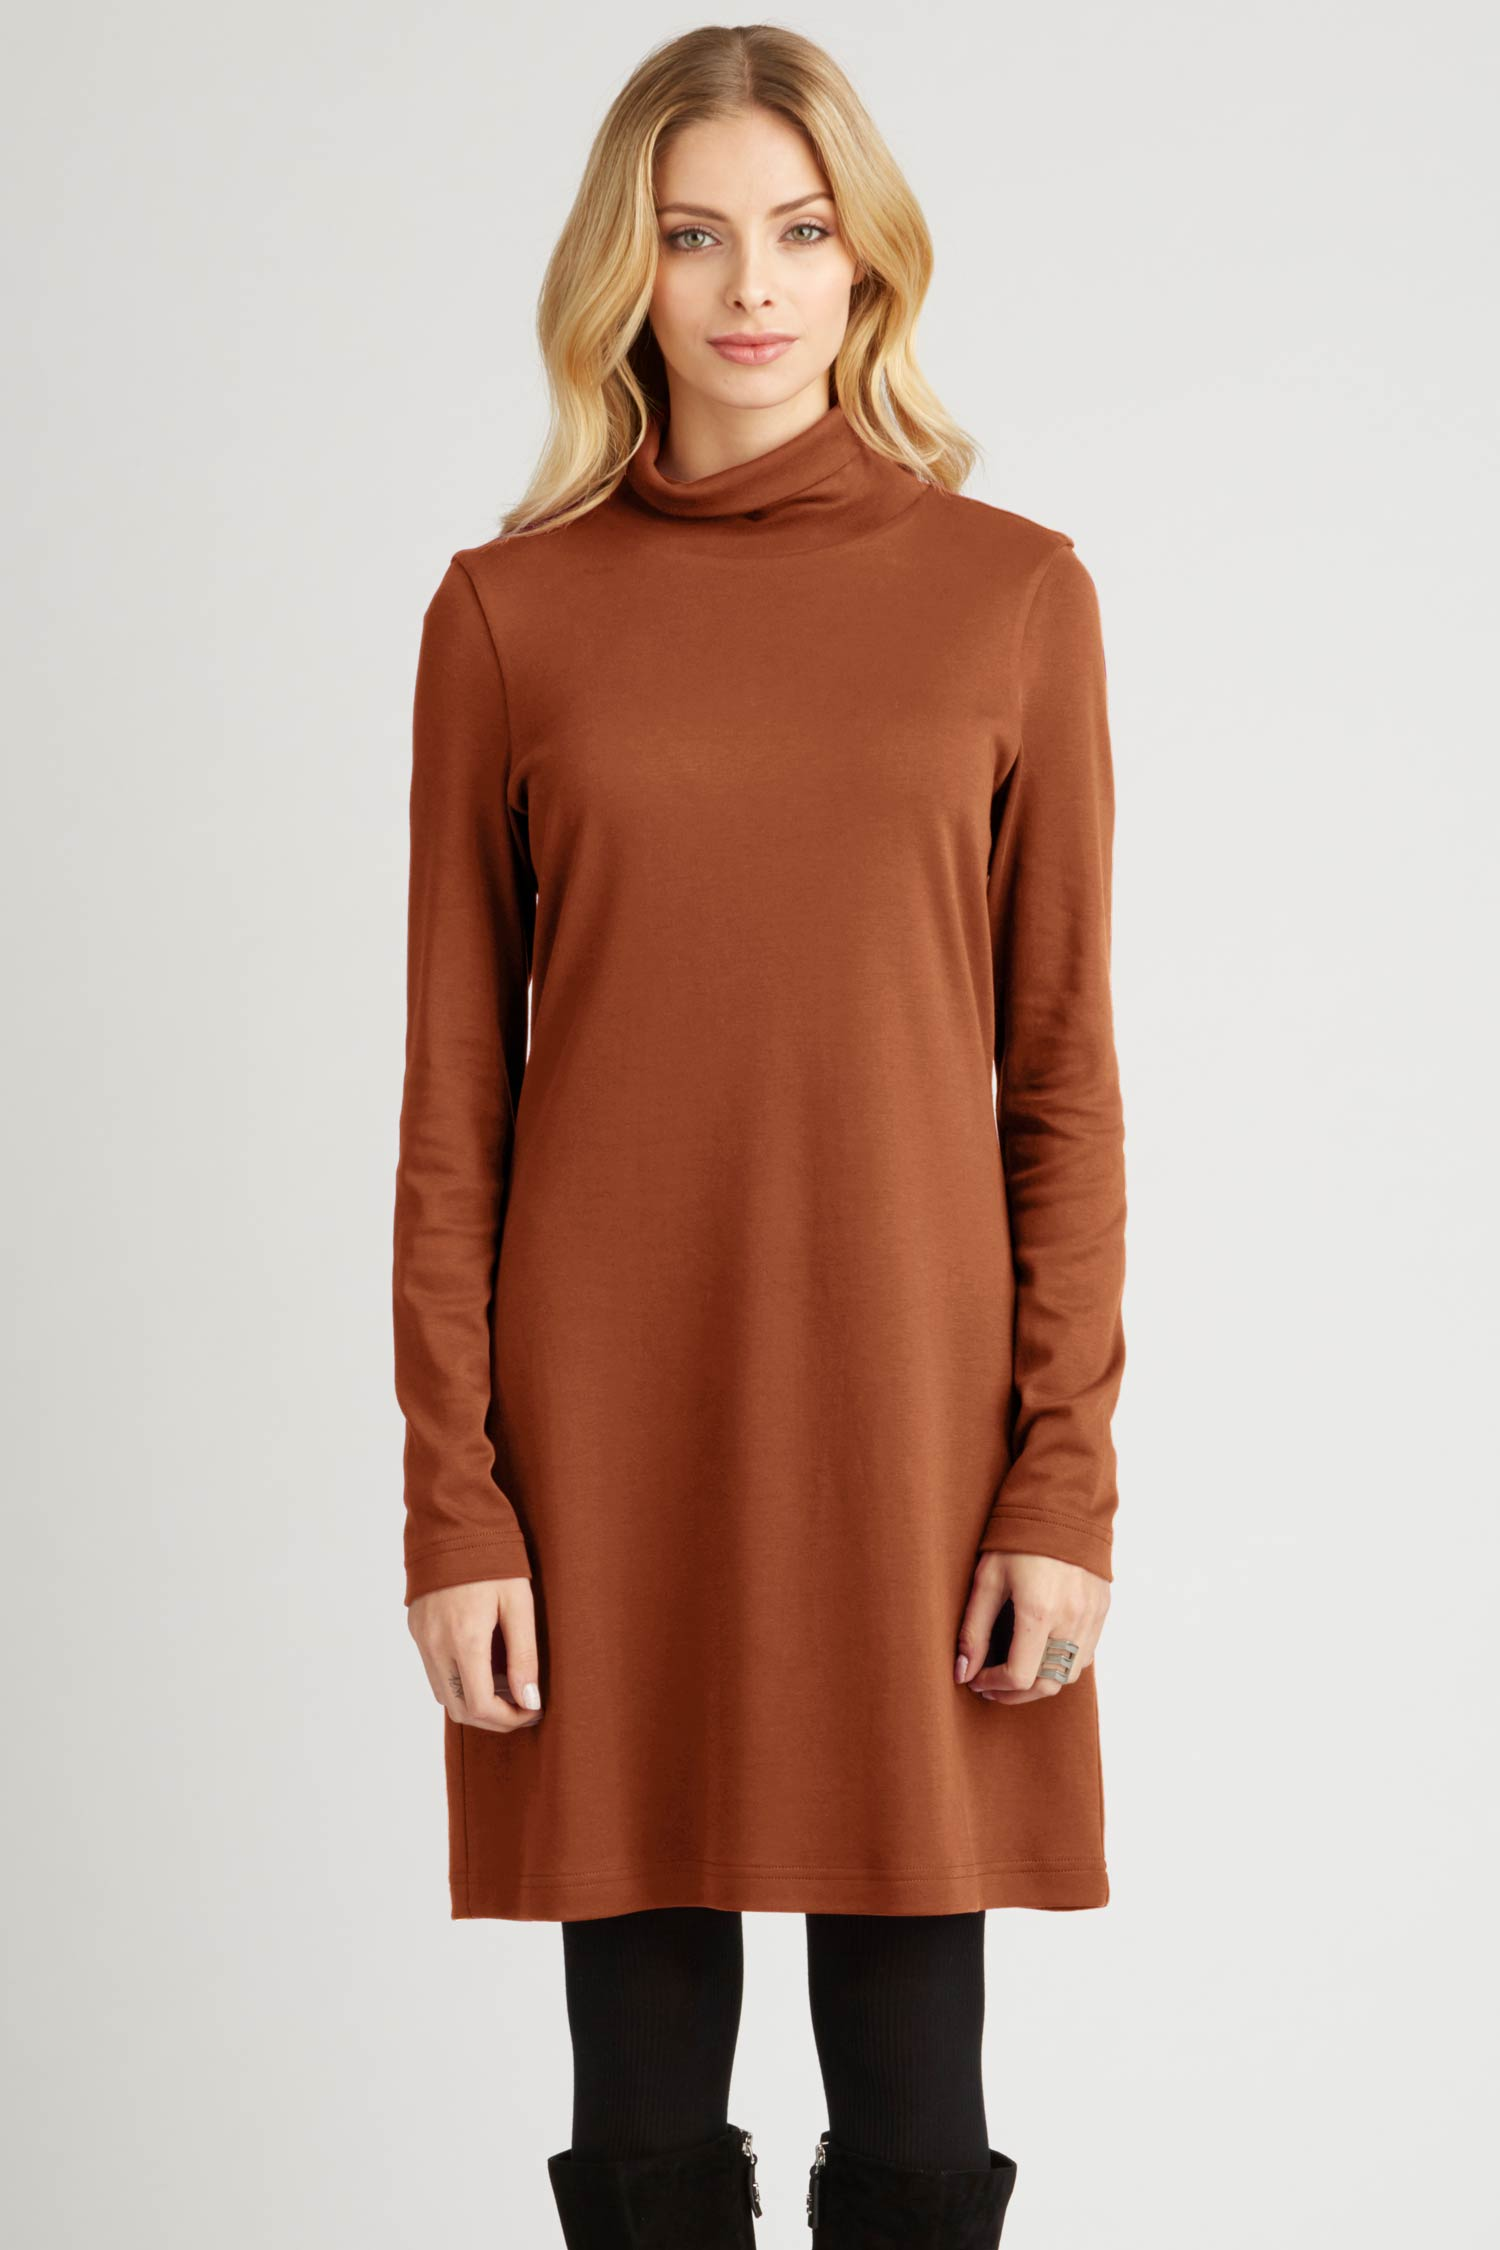 Womens Turtleneck Dress in Brown | Slow Fashion